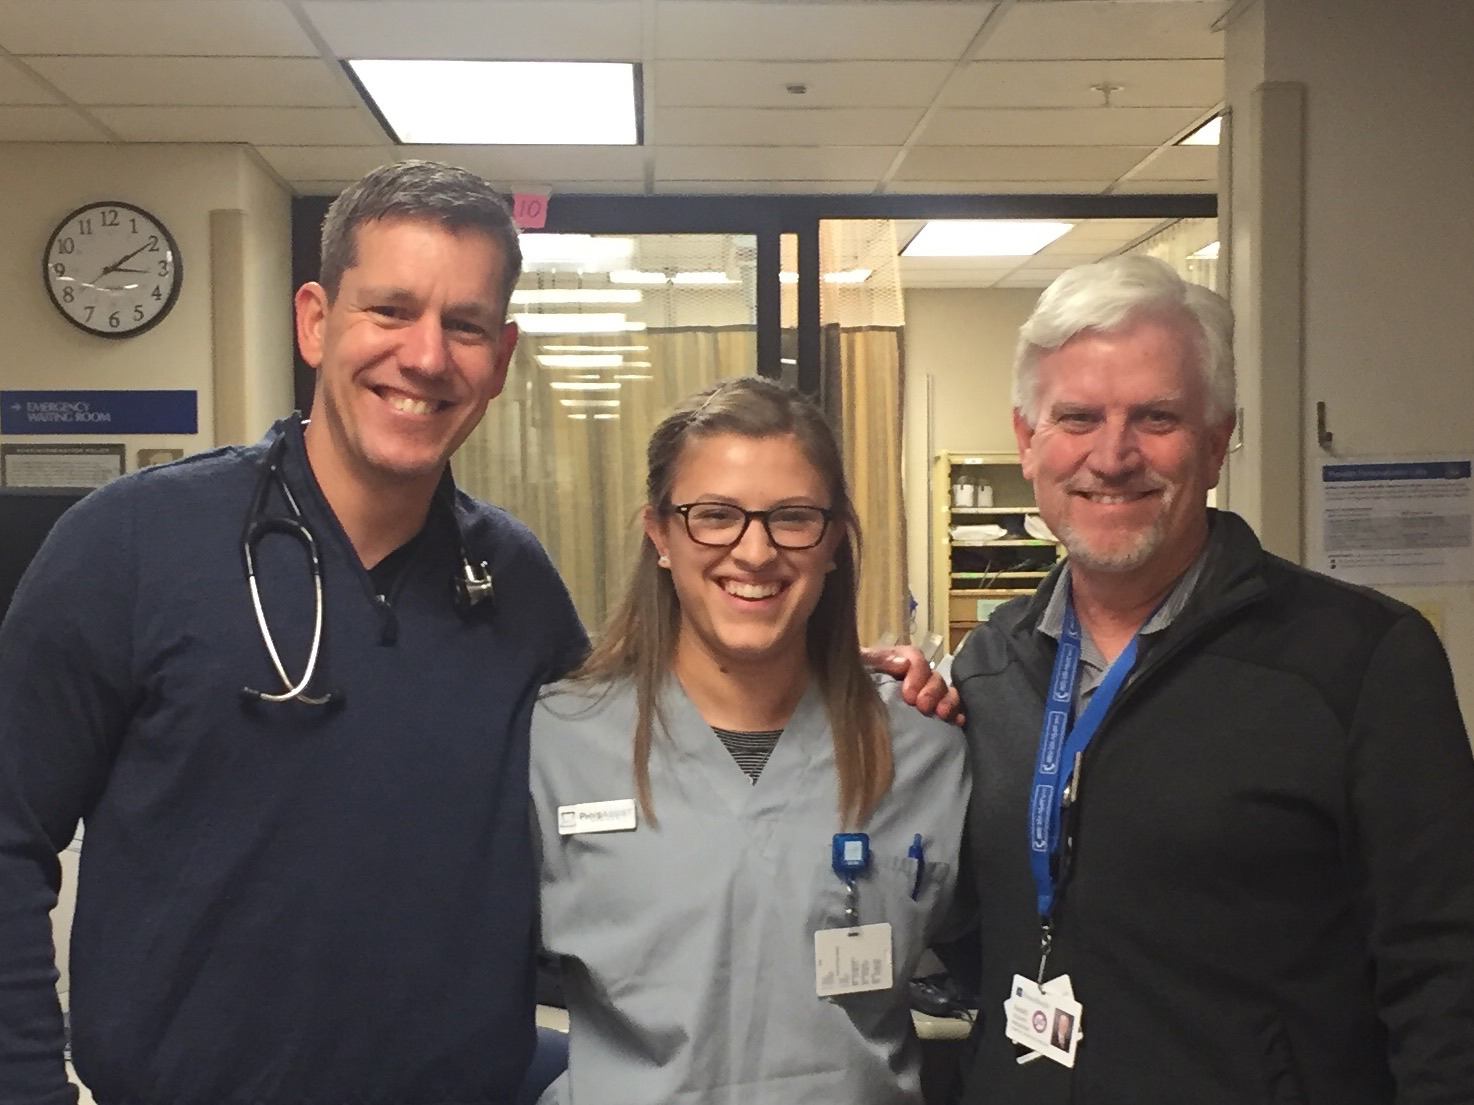 Rand O'Leary with Emergency Room Director Dr. Scott Williams and new Medical Scribe Emily.